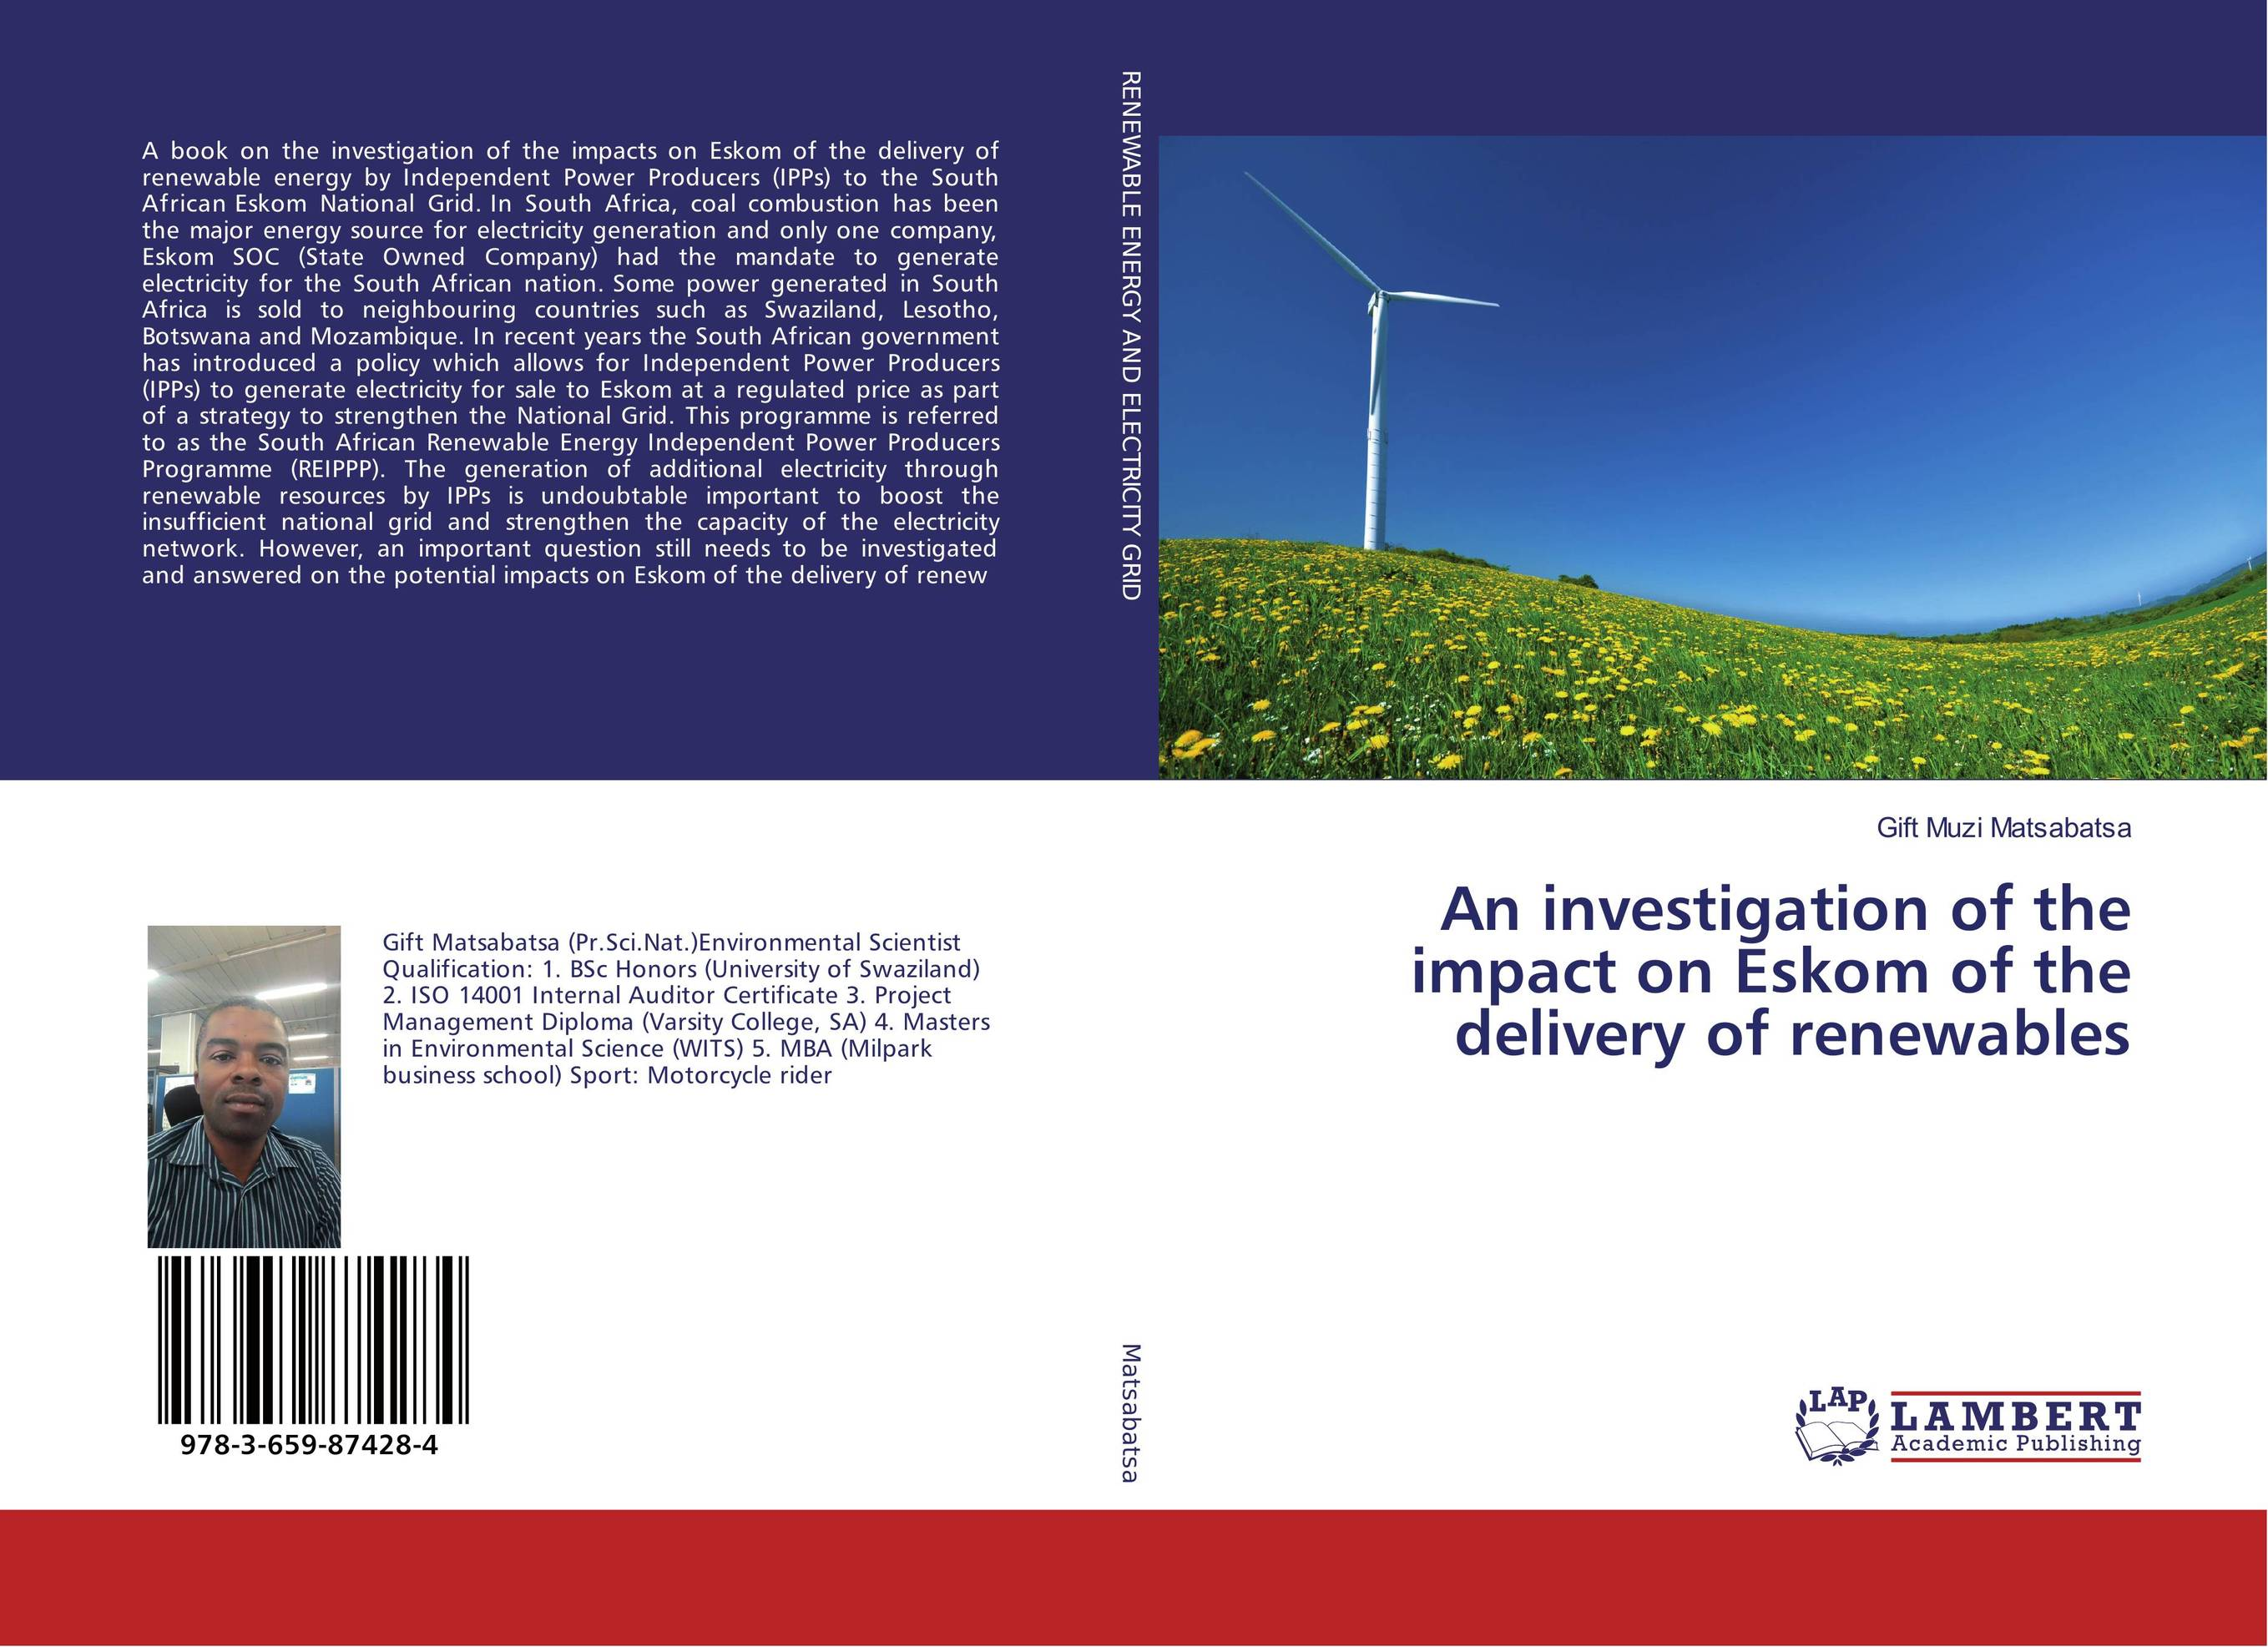 An investigation of the impact on Eskom of the delivery of renewables arcade ndoricimpa inflation output growth and their uncertainties in south africa empirical evidence from an asymmetric multivariate garch m model